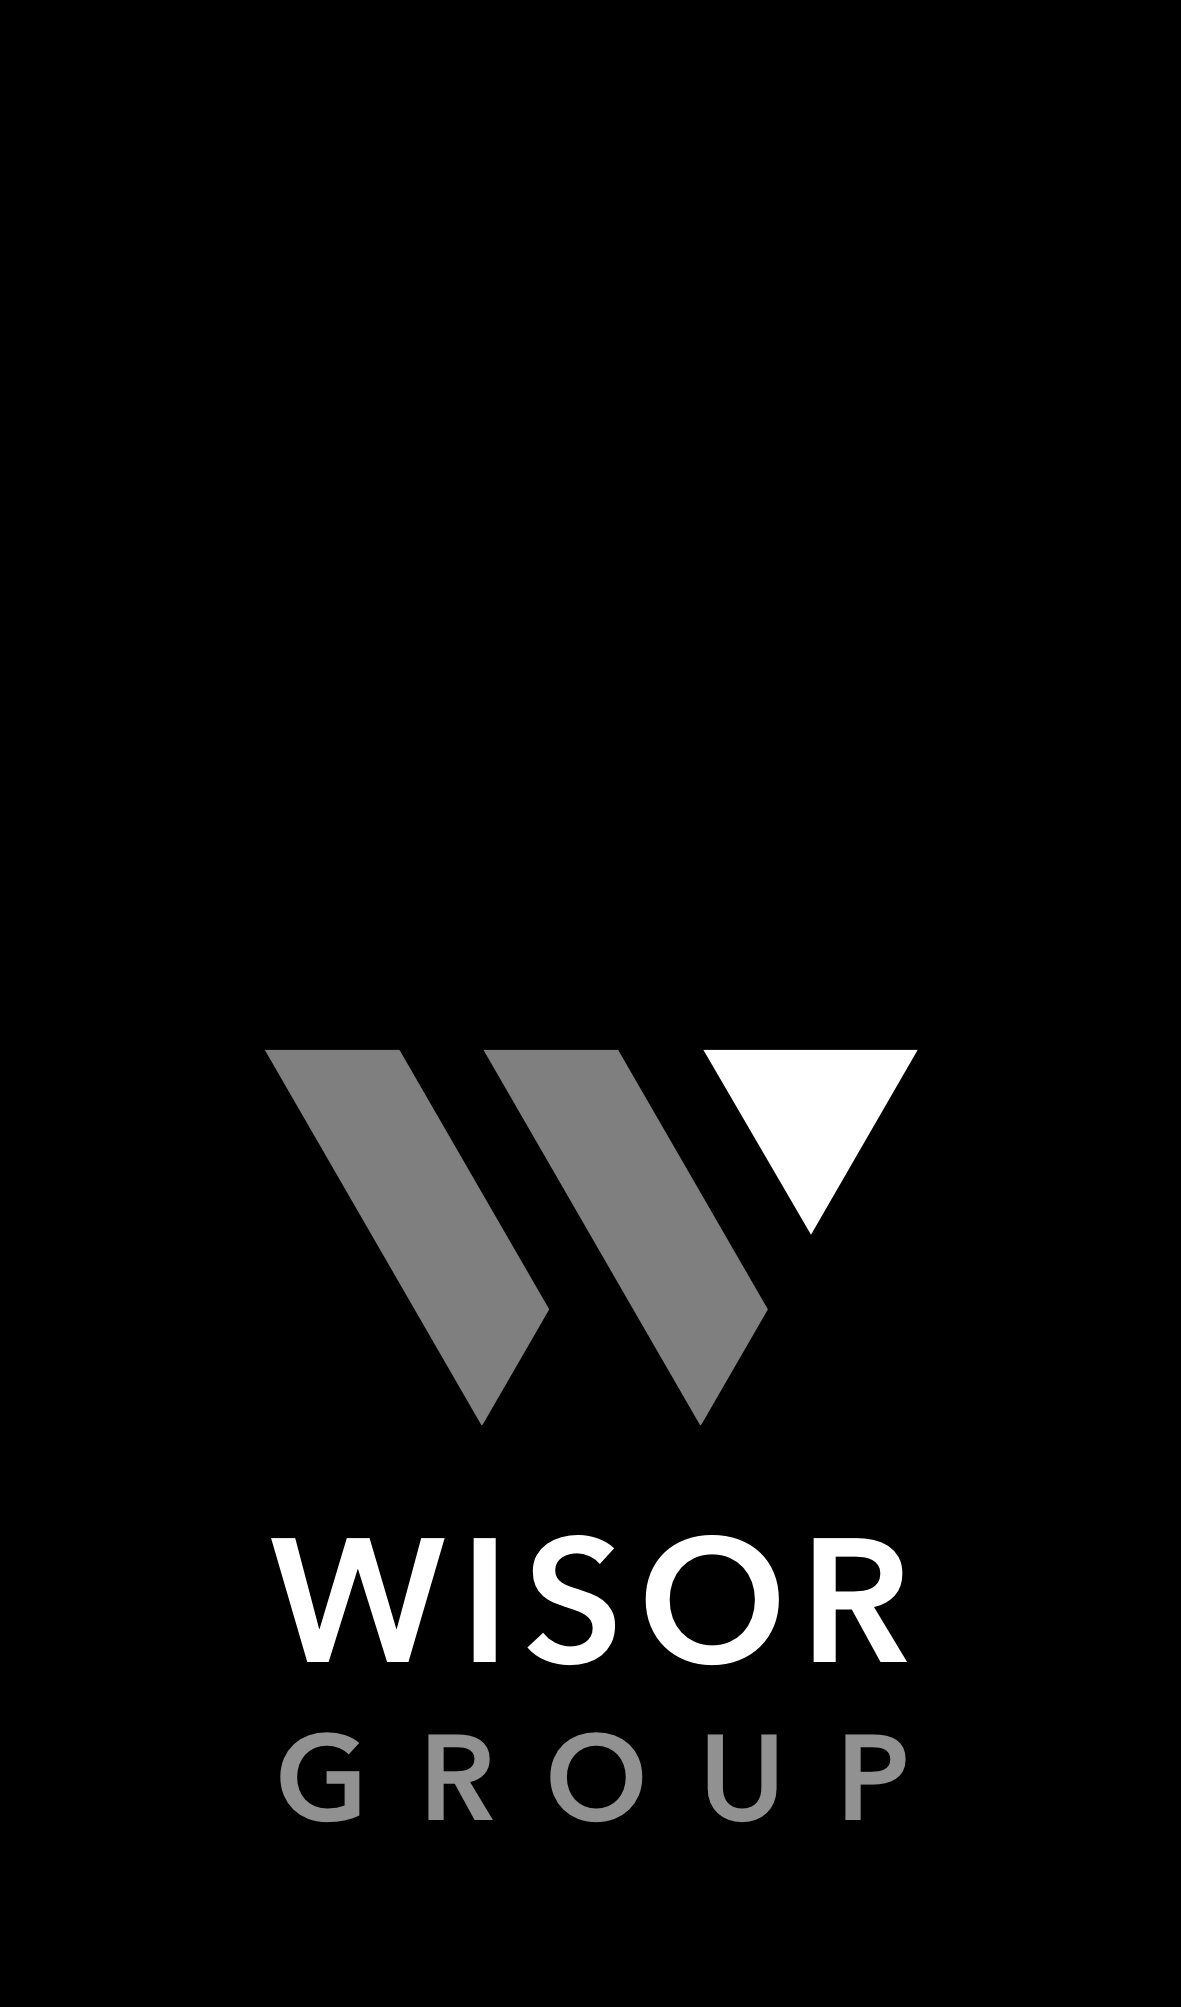 Wisor Group Document Logo.jpg  For download click on image.